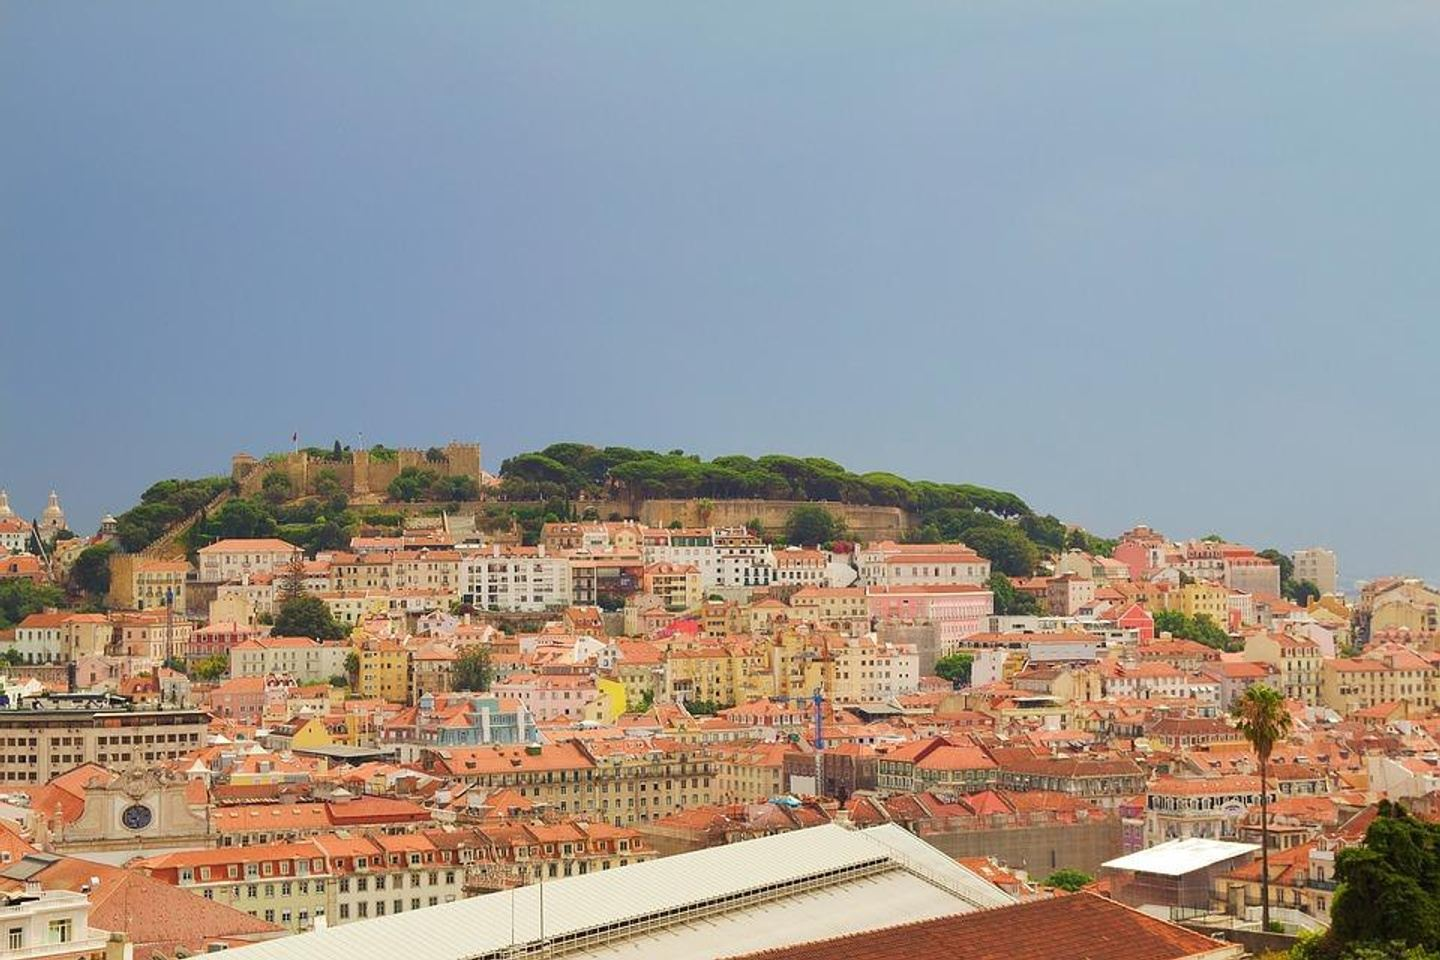 Top Places for visit, Attractions and Activities in Lisbon